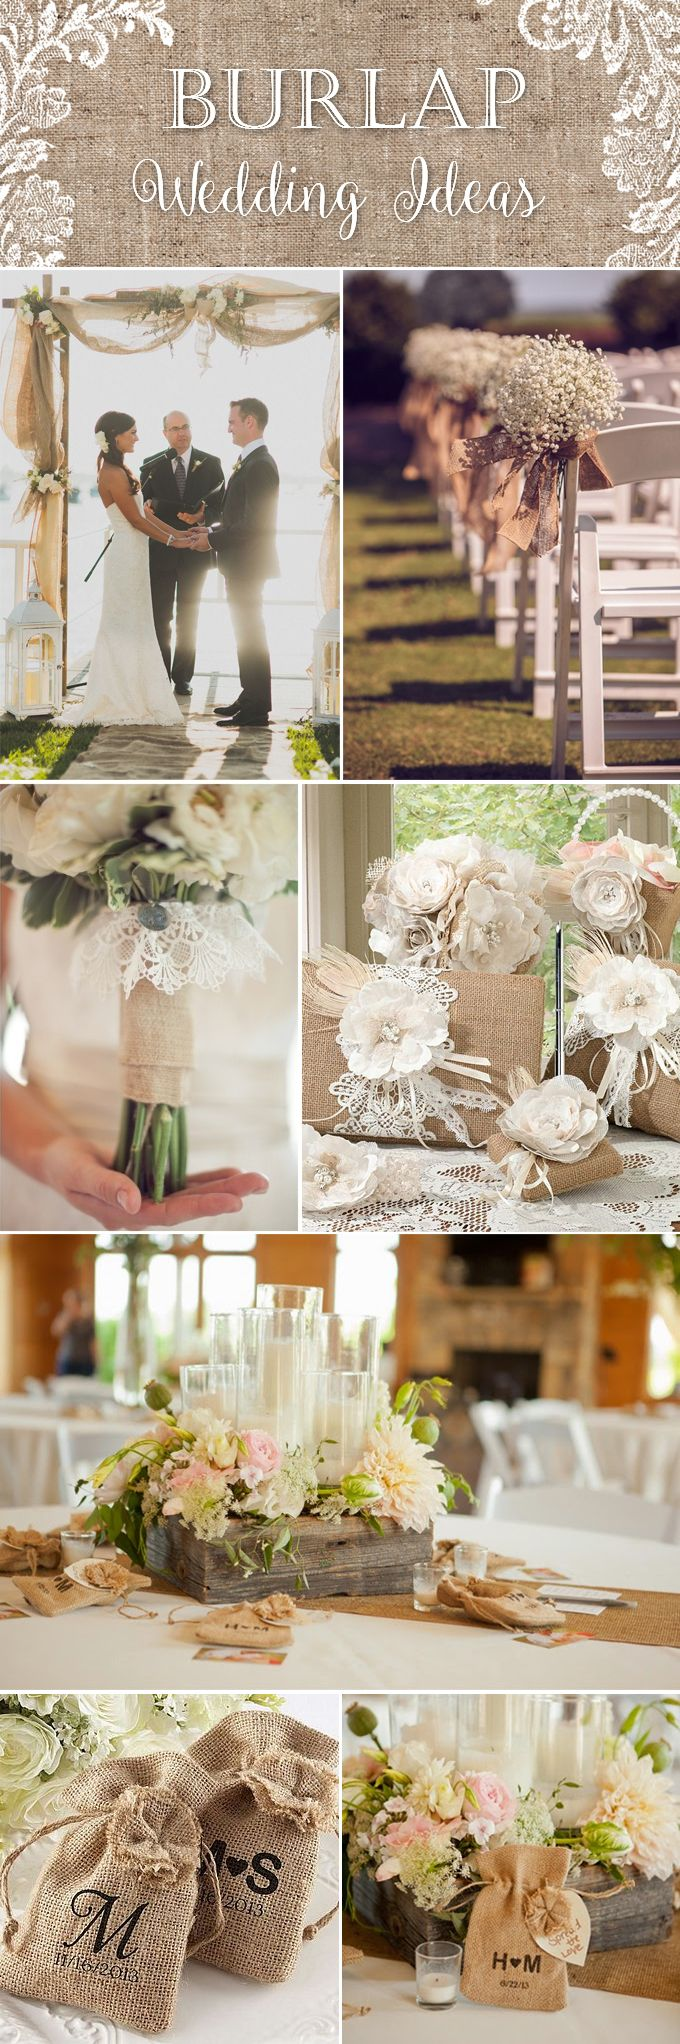 115 Inspirational Ideas For The Perfect Rustic Wedding